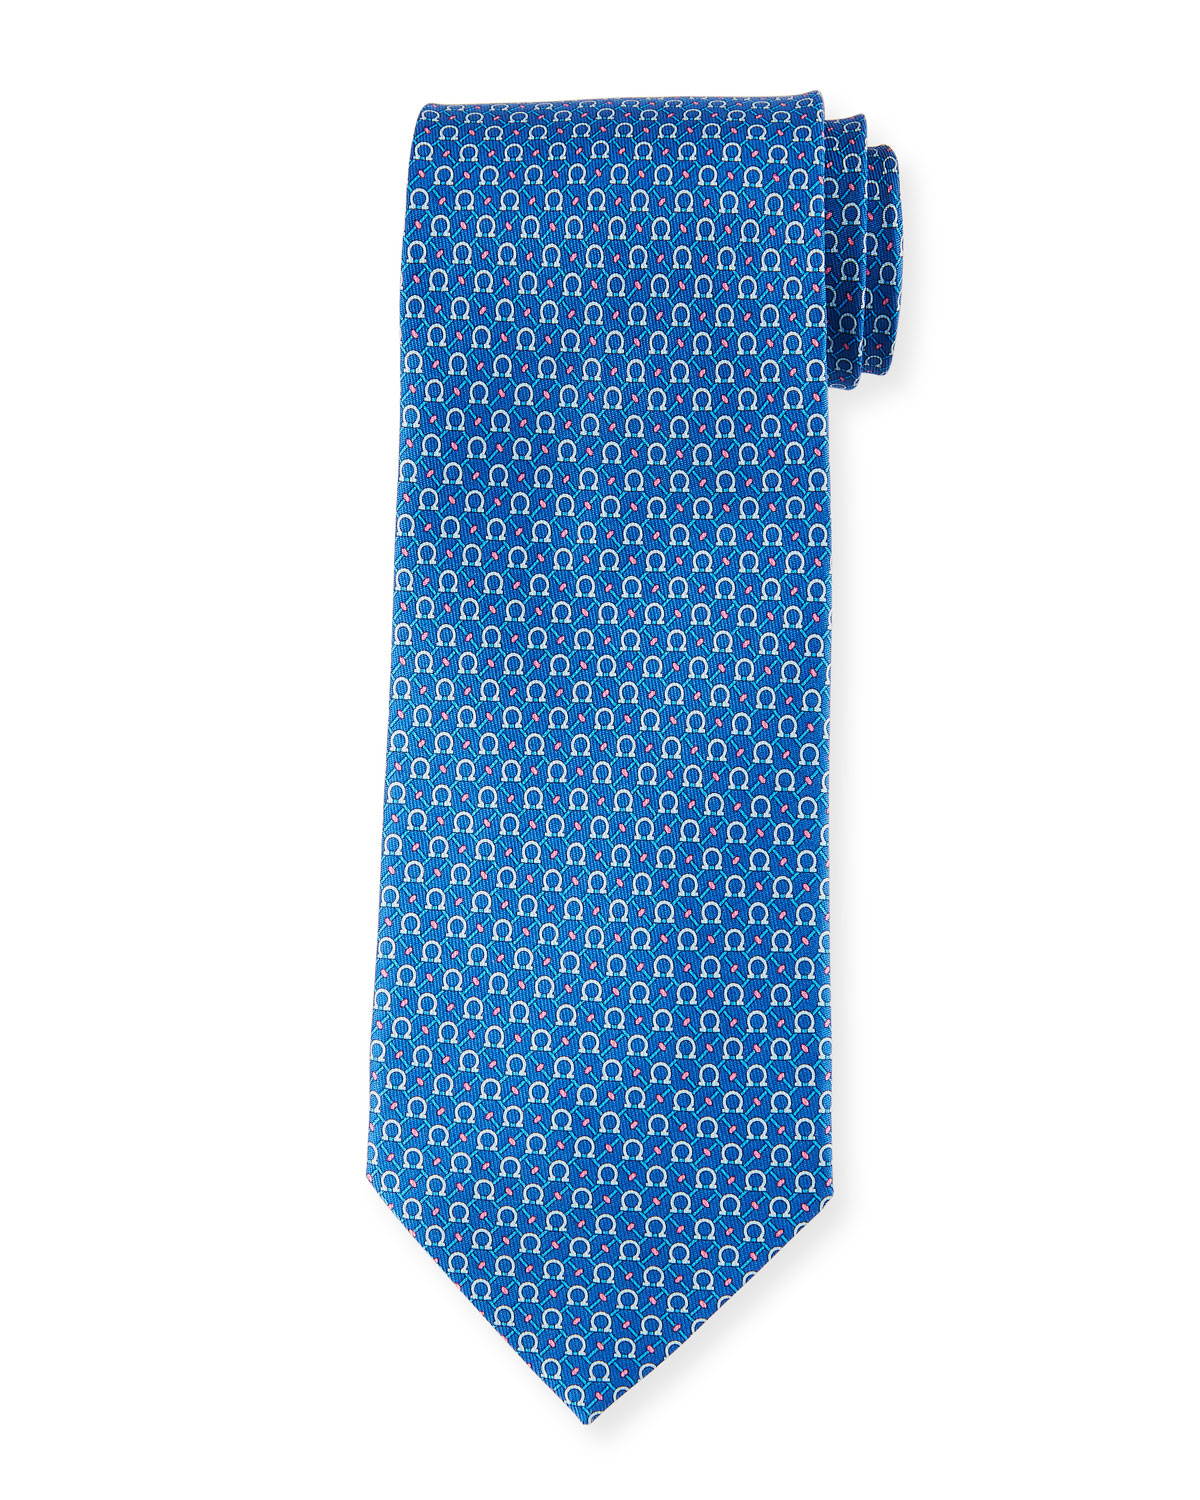 Ferragamo Ties Neiman Marcus - Tie Wallpaper HD